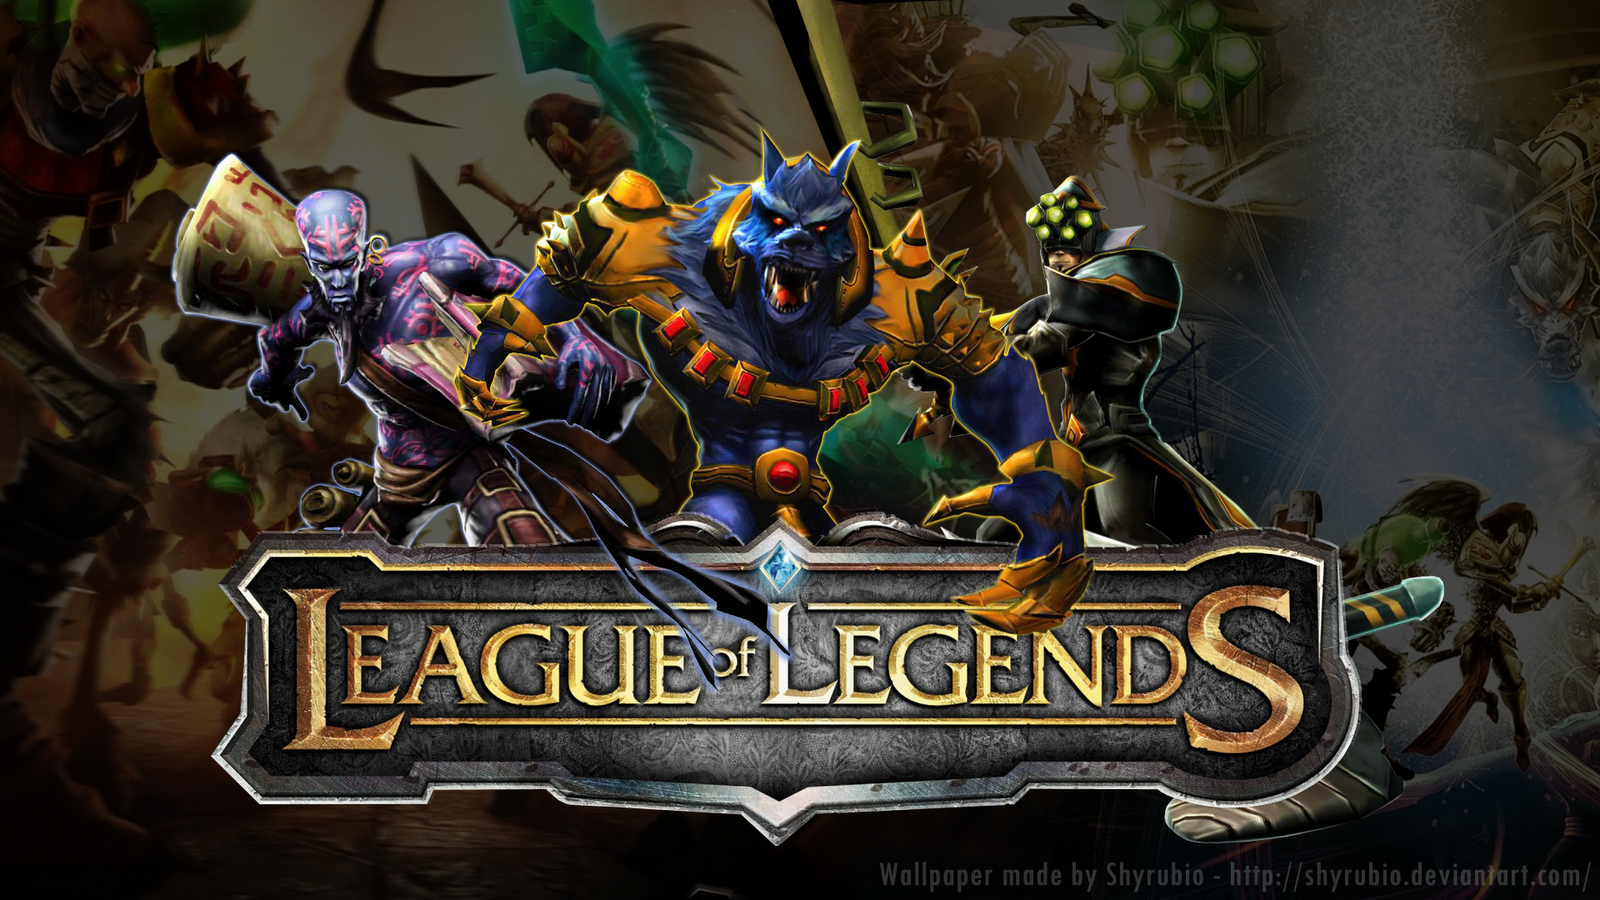 League of legends Bienvenidos a MI pgina 1600x900